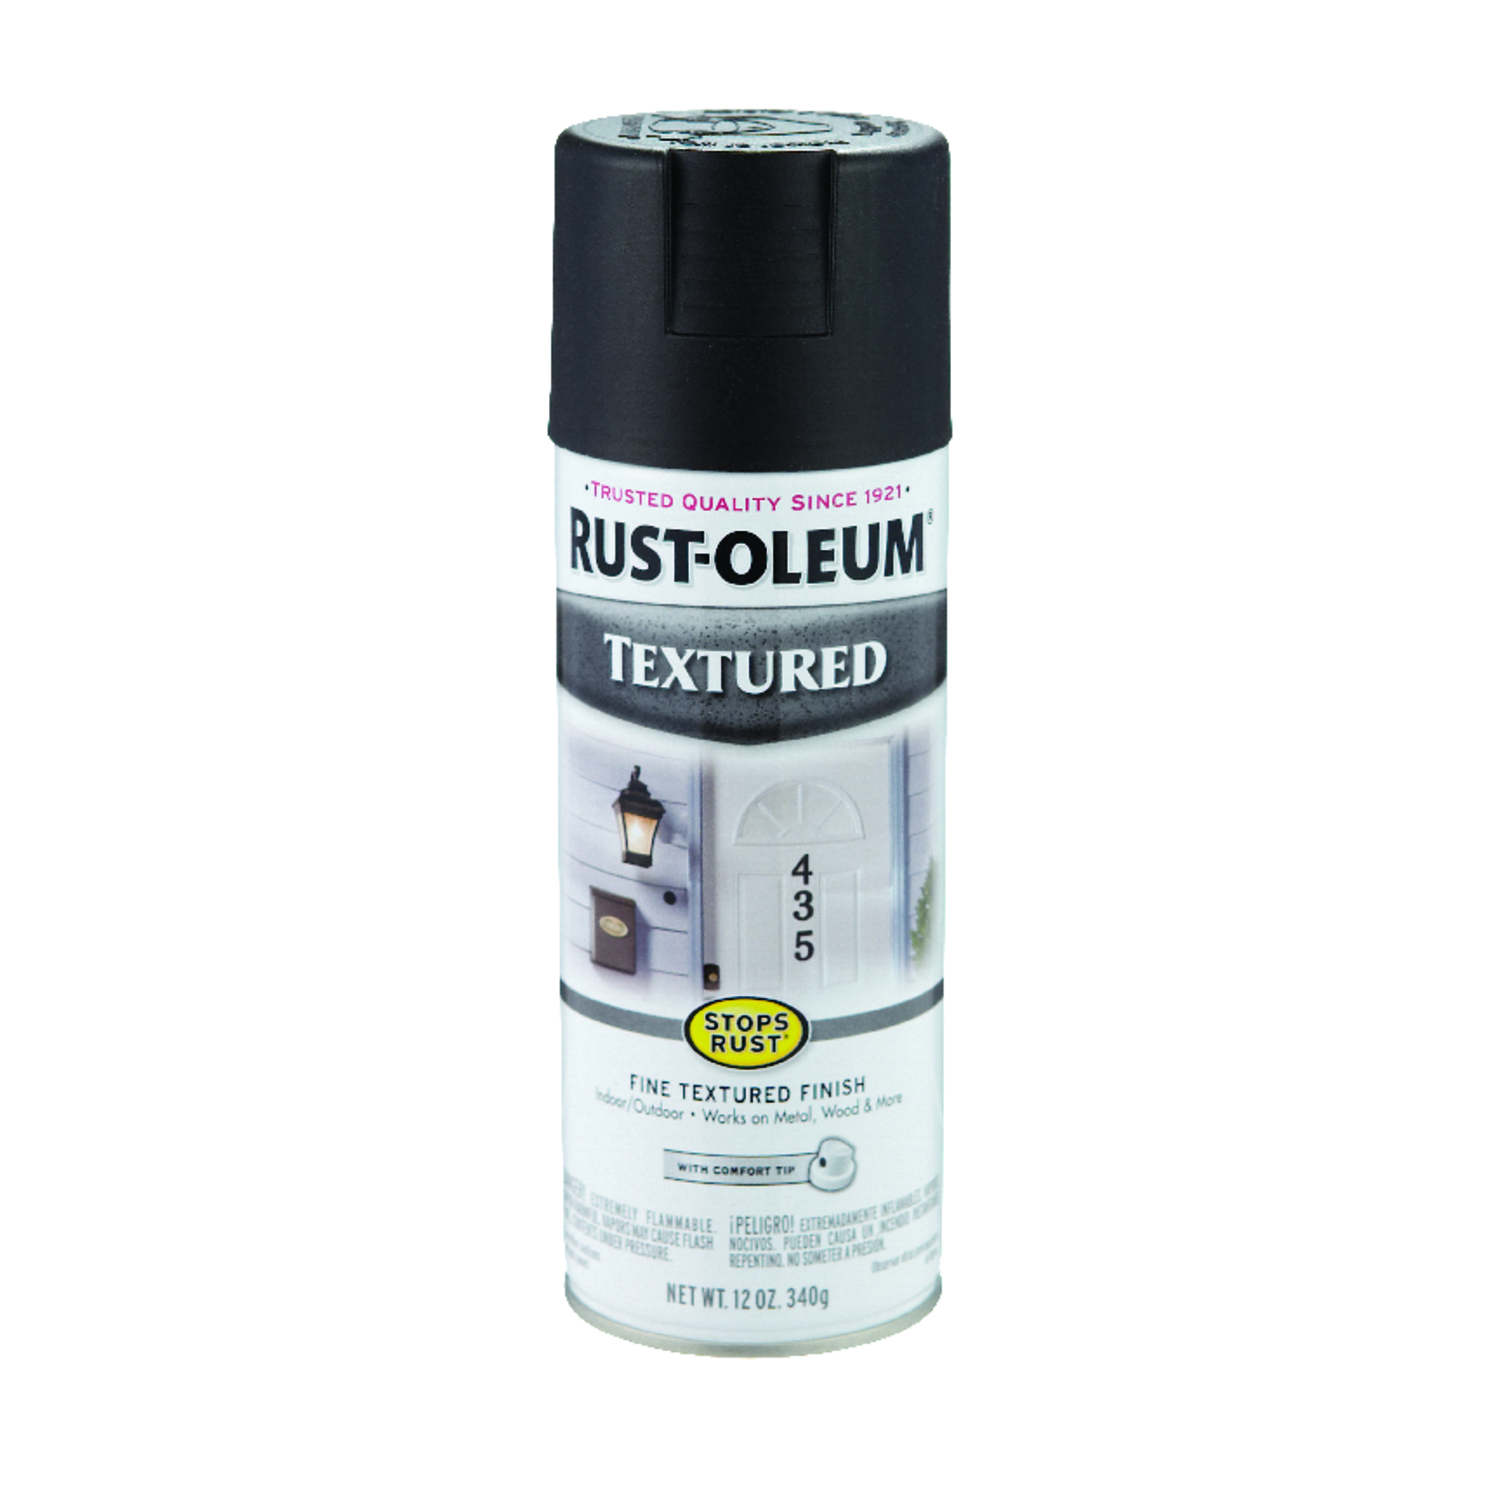 Rust-Oleum  Stops Rust  Textured  Black  12 oz. Spray Paint